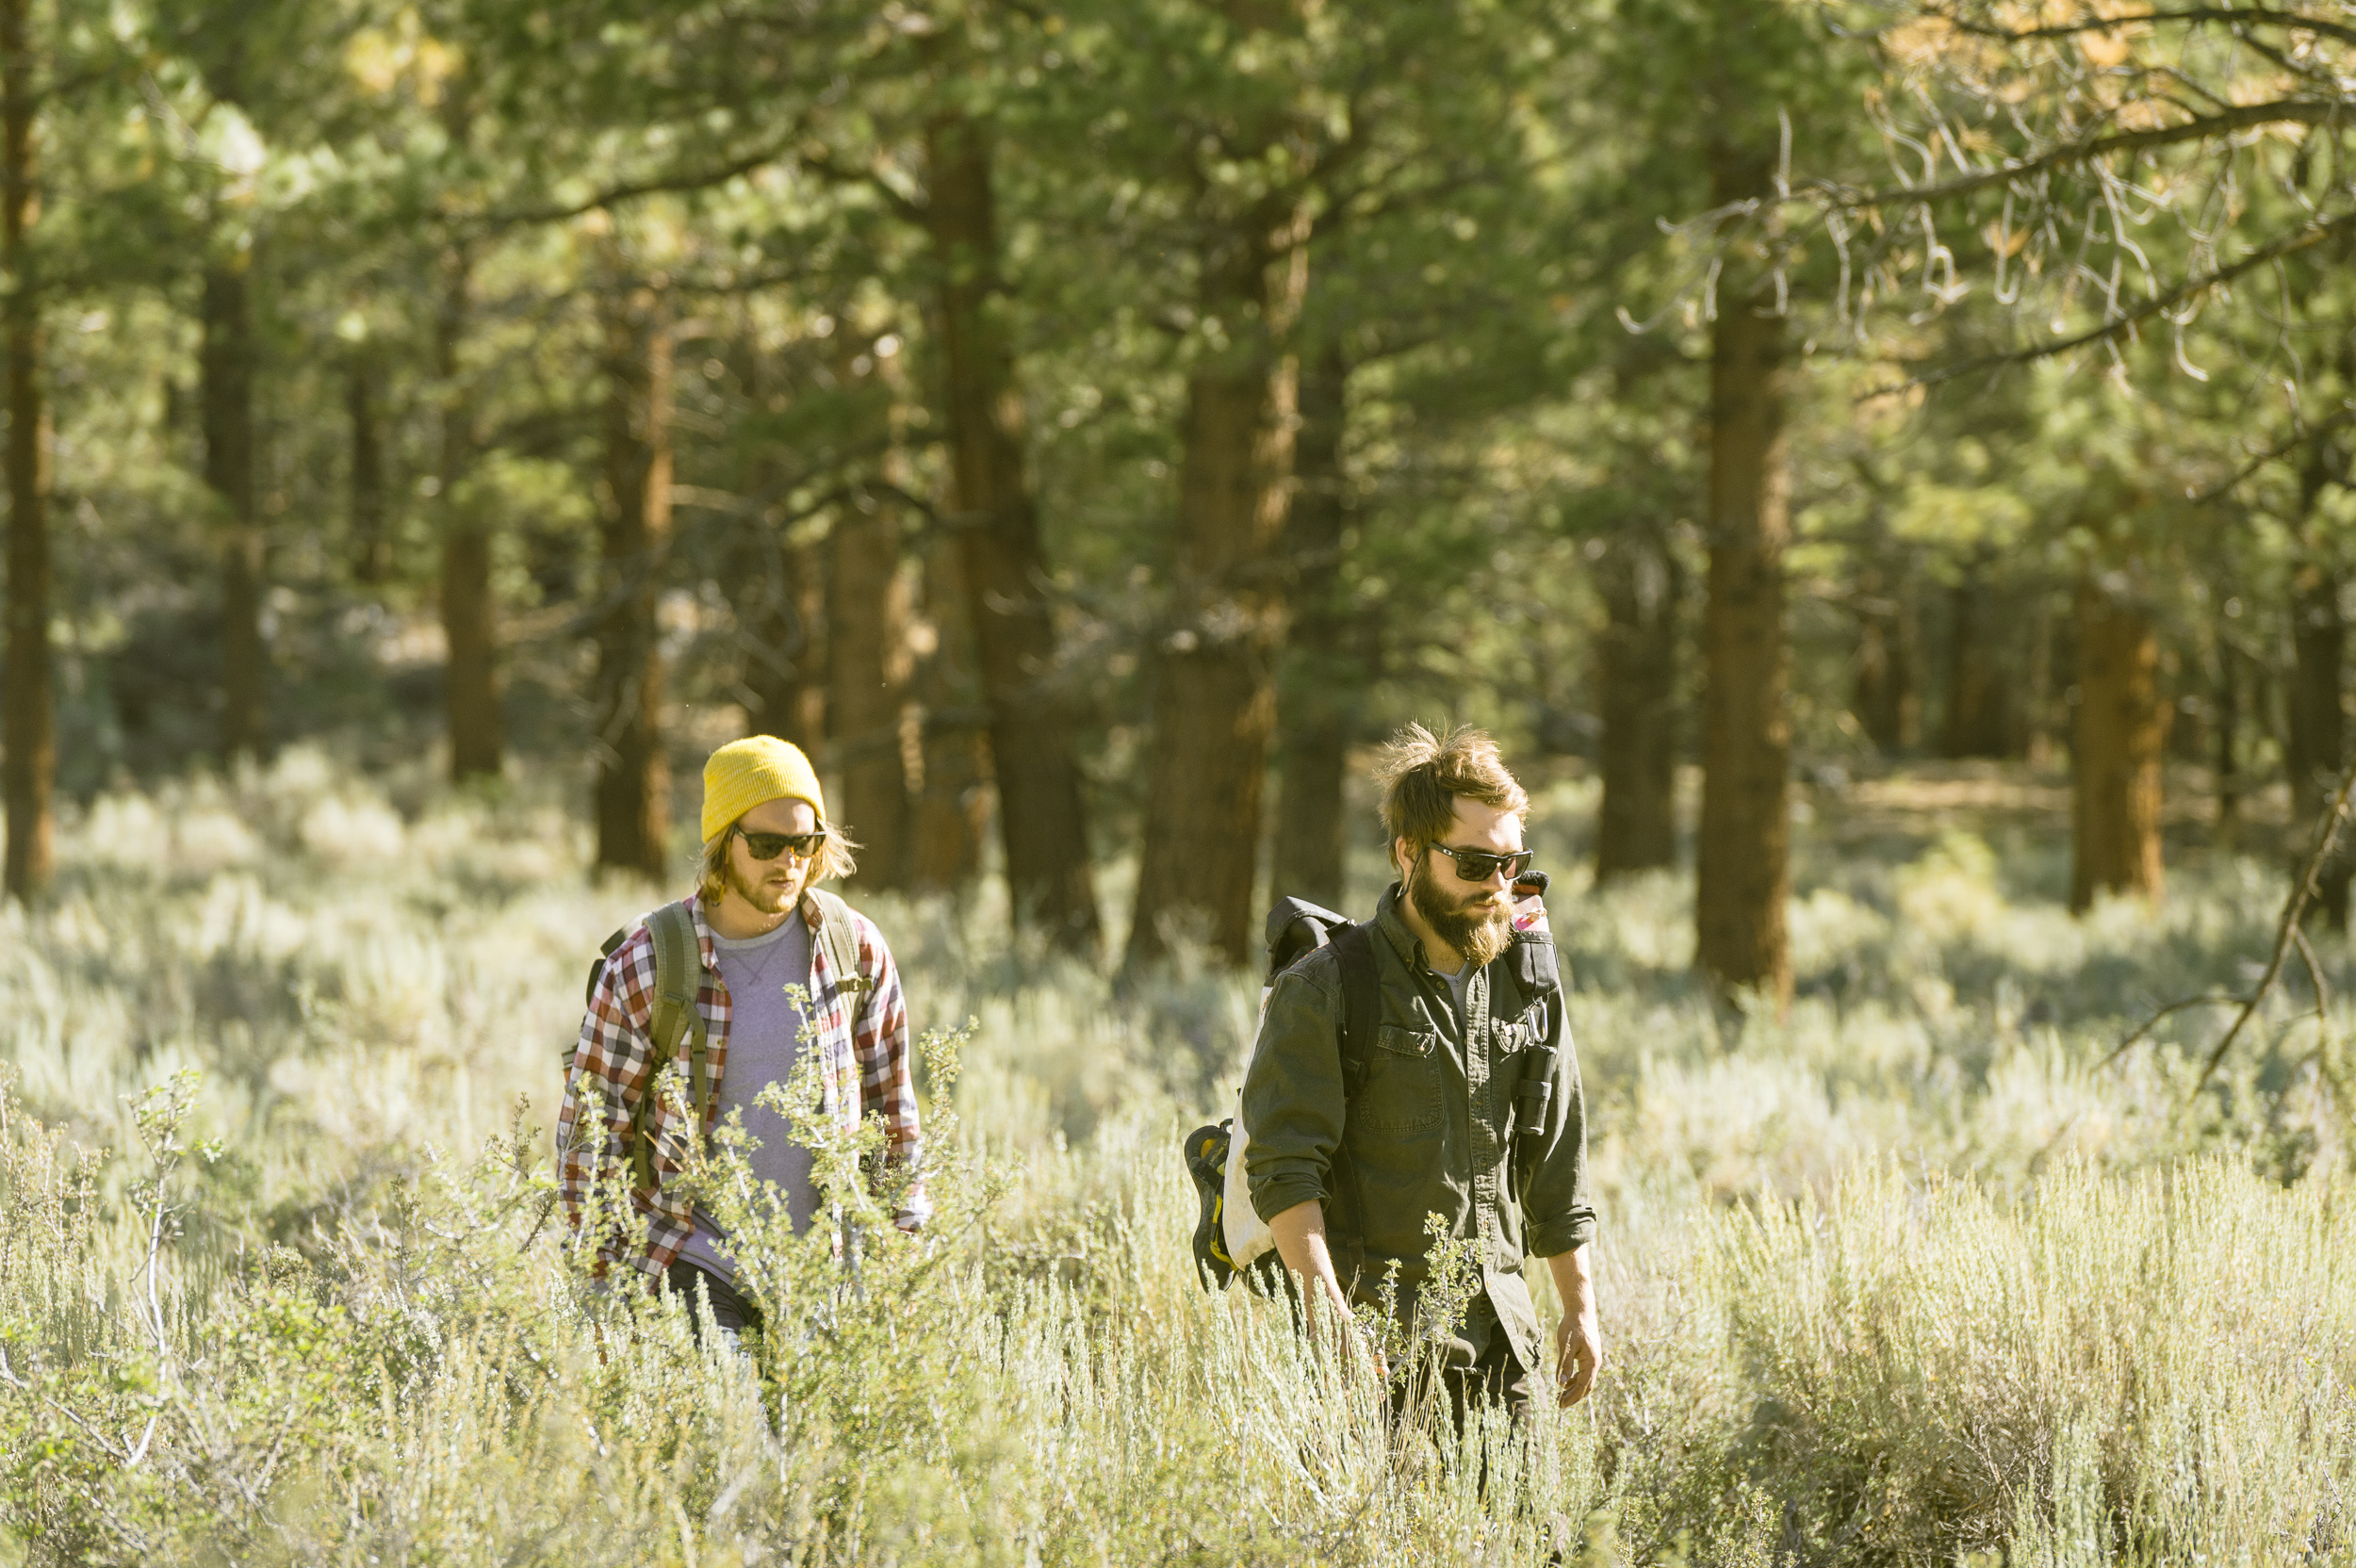 Video: The Forrer Brothers at Mammoth Lakes, CA